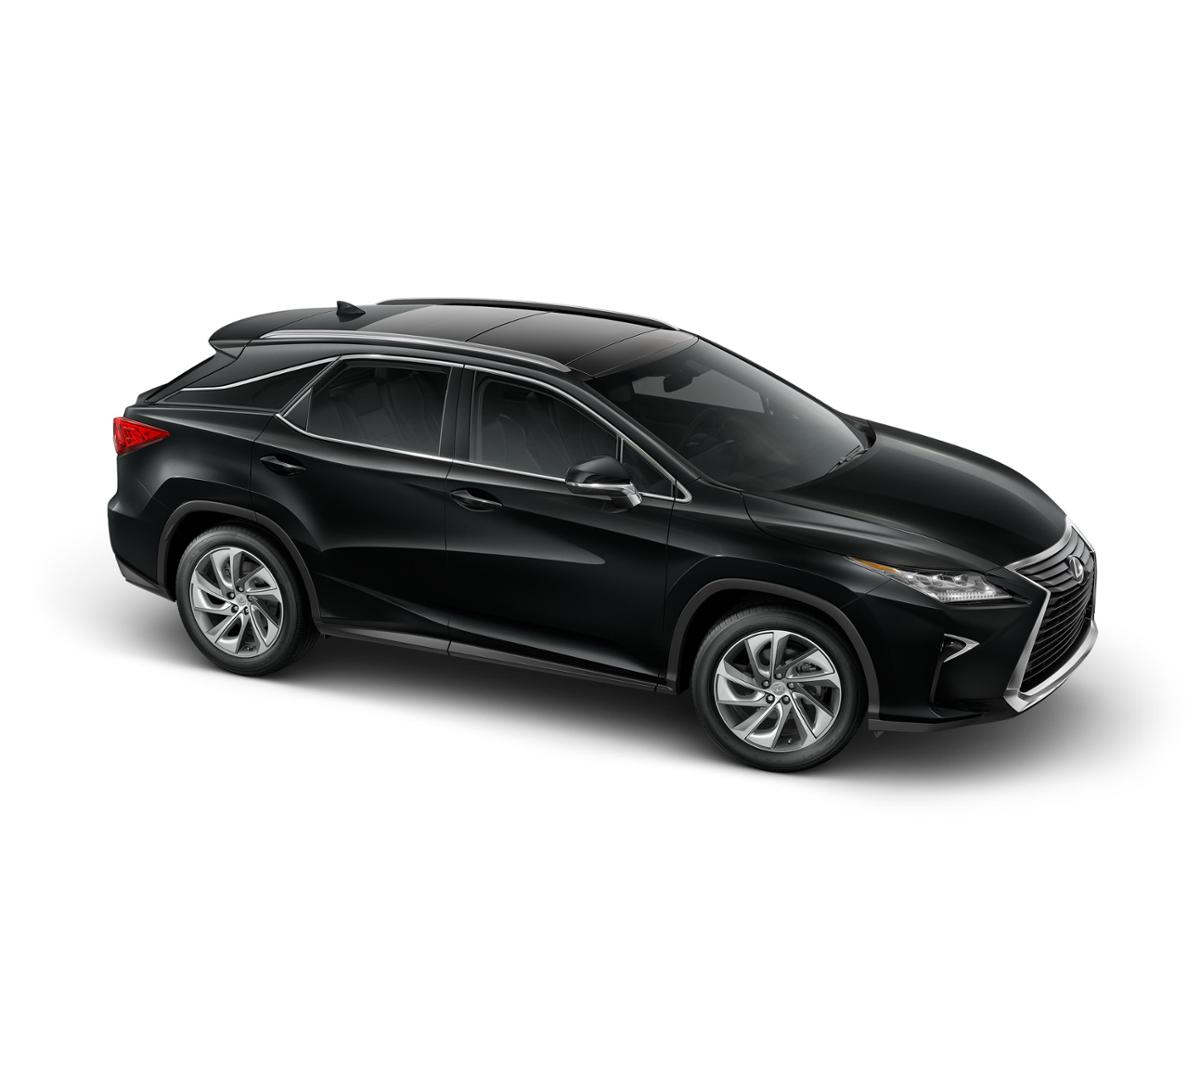 New Suv 2018 Obsidian Lexus RX 350 Luxury For Sale in NC ...